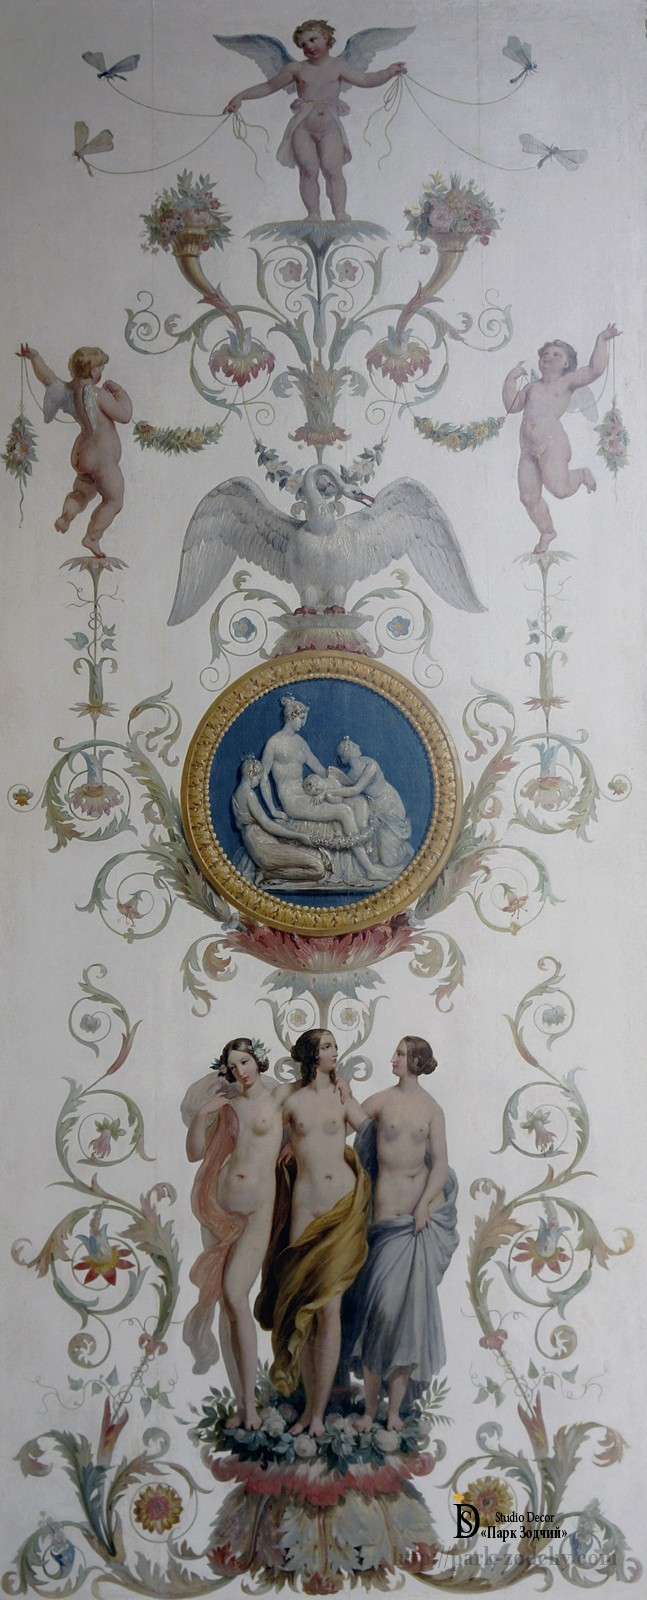 Ceiling painting in the style of the late Renaissance